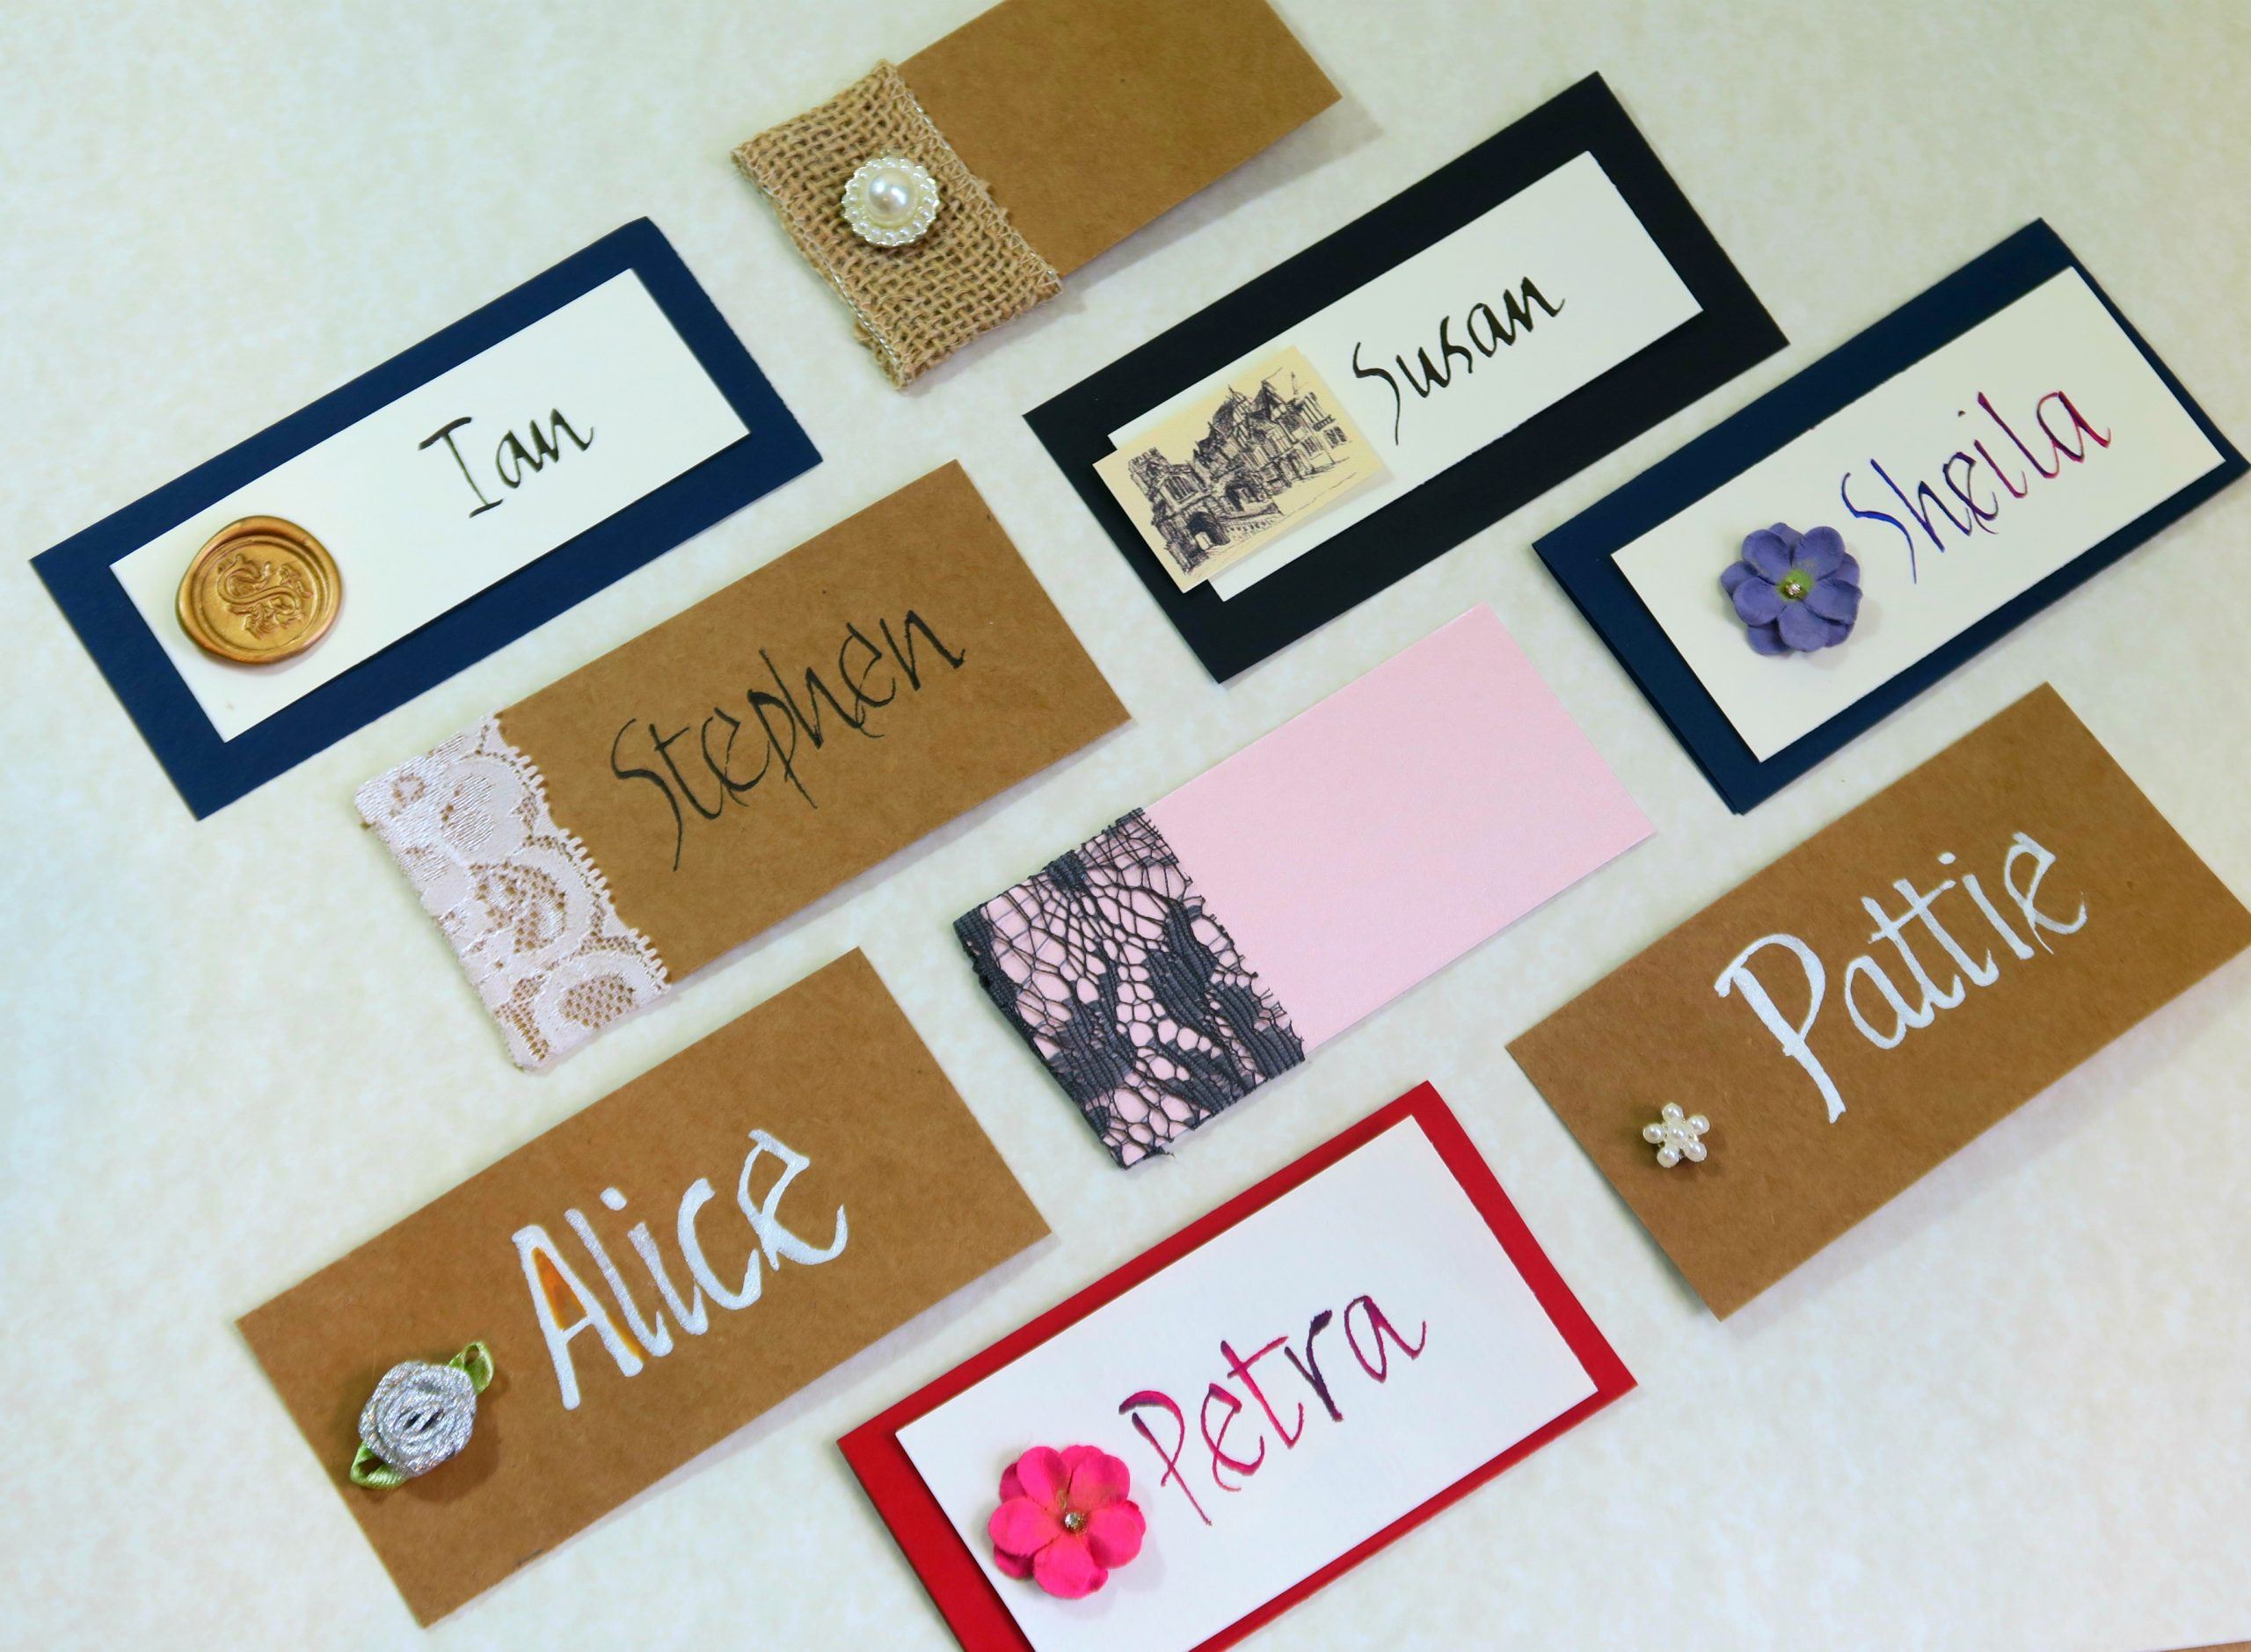 Mix of different flat place cards with emblems